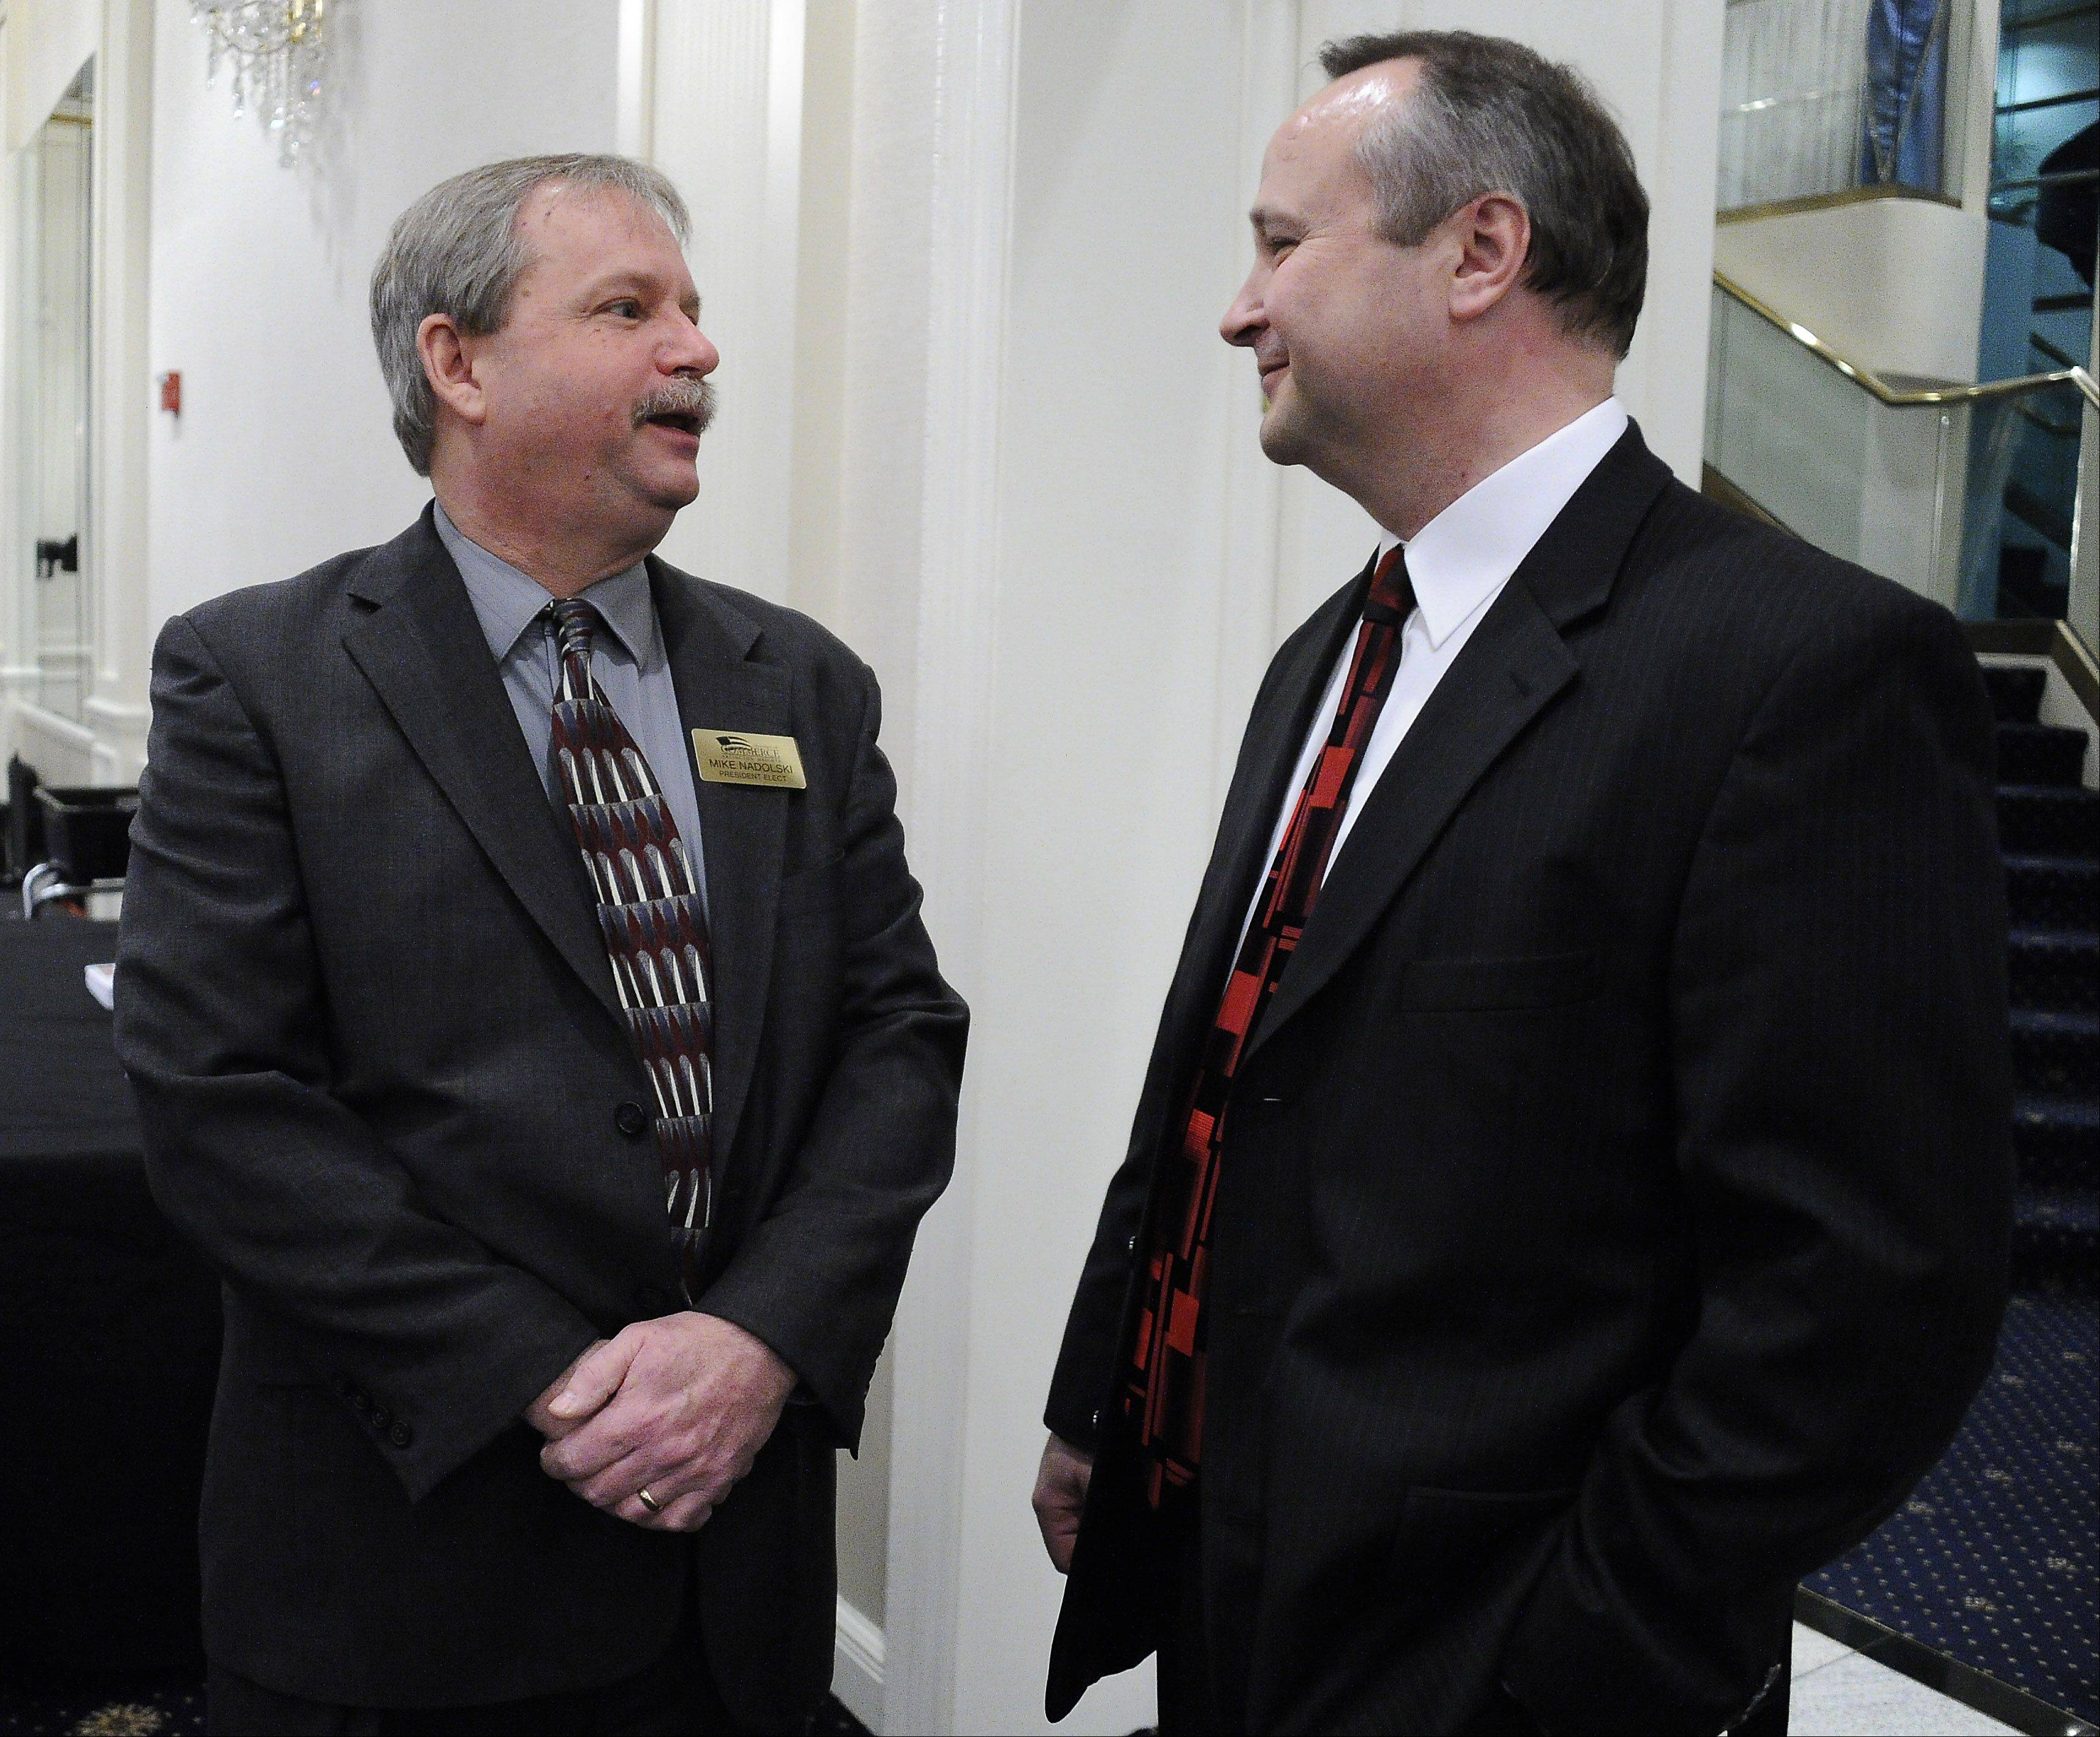 Chamber Executive Director Jon Ridler, right, talks with Mike Nadolski of Visual Enterprise Systems Inc. of Arlington Heights at the annual Arlington Heights Chamber of Commerce dinner on Thursday. Nadolski was named Business Leader of the Year.